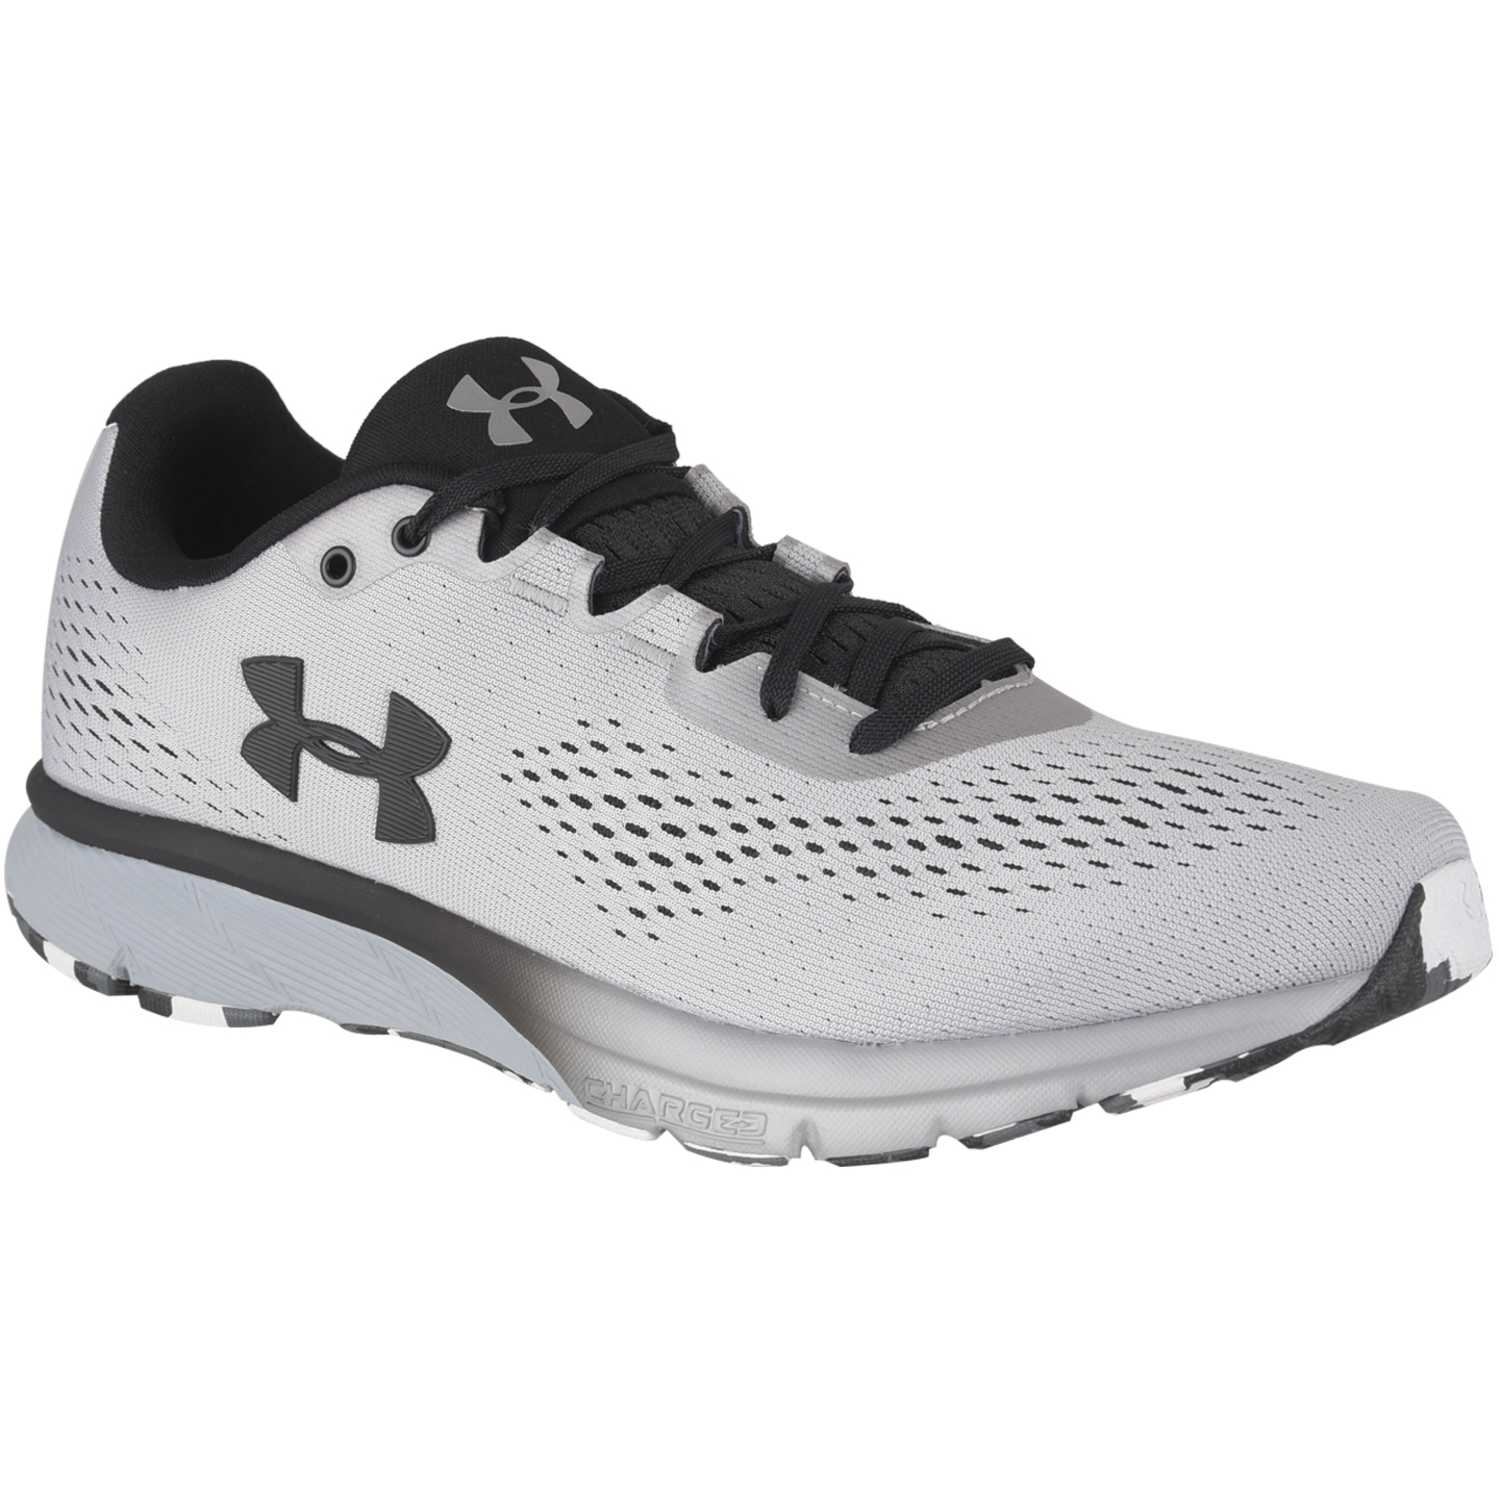 Zapatilla de Hombre Under Armour Gris / negro ua charged spark